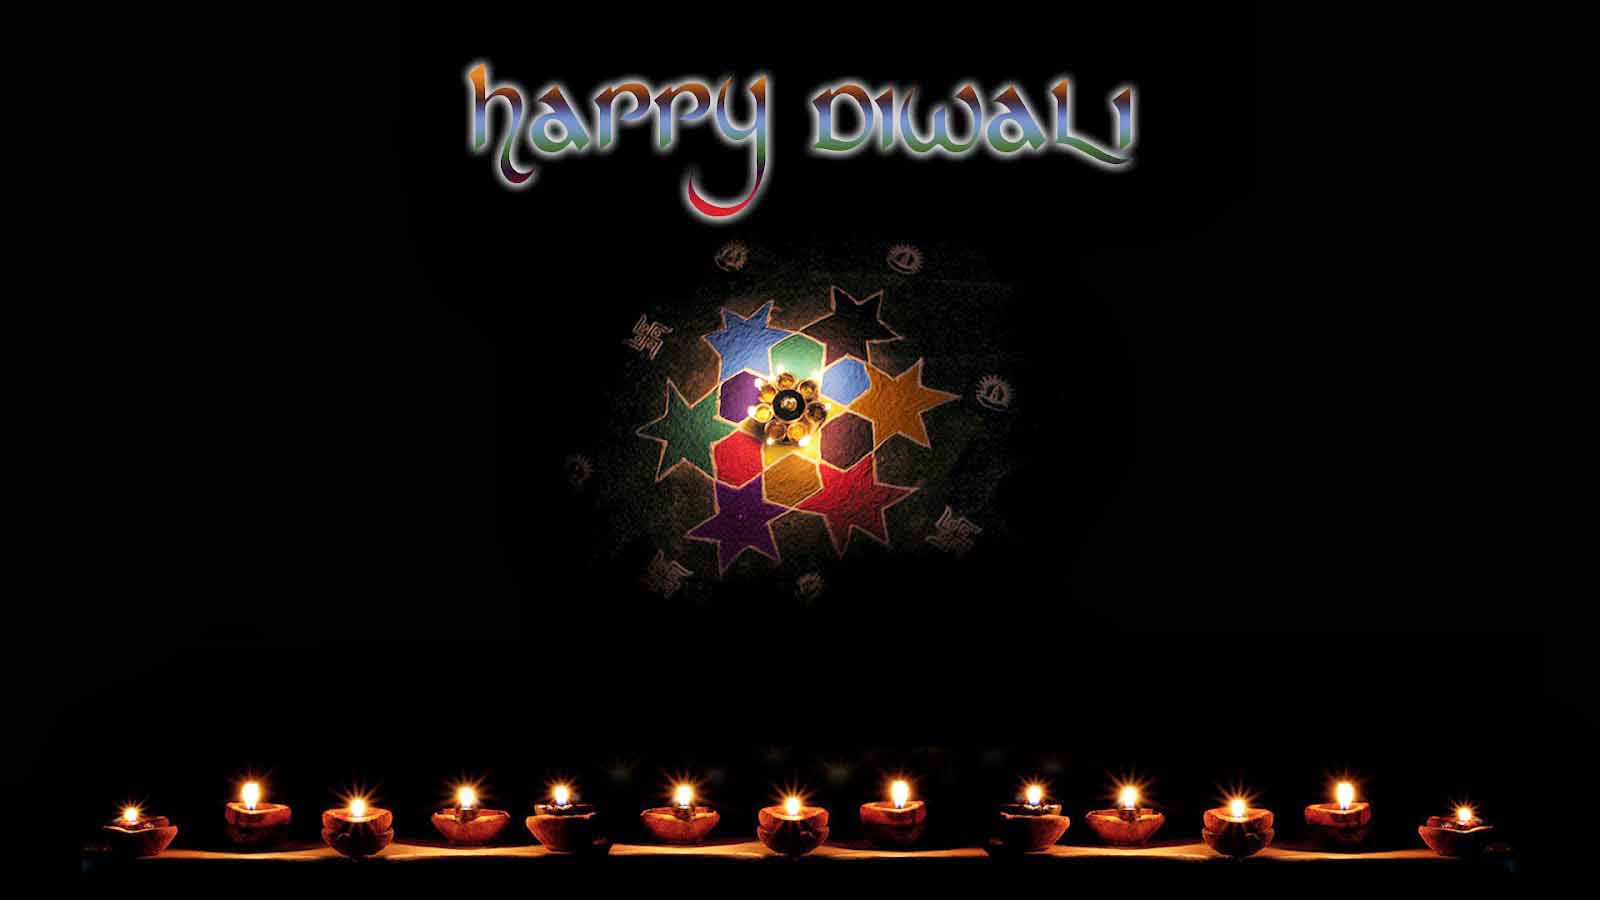 happy diwali wallpapers and images photos downlod easily